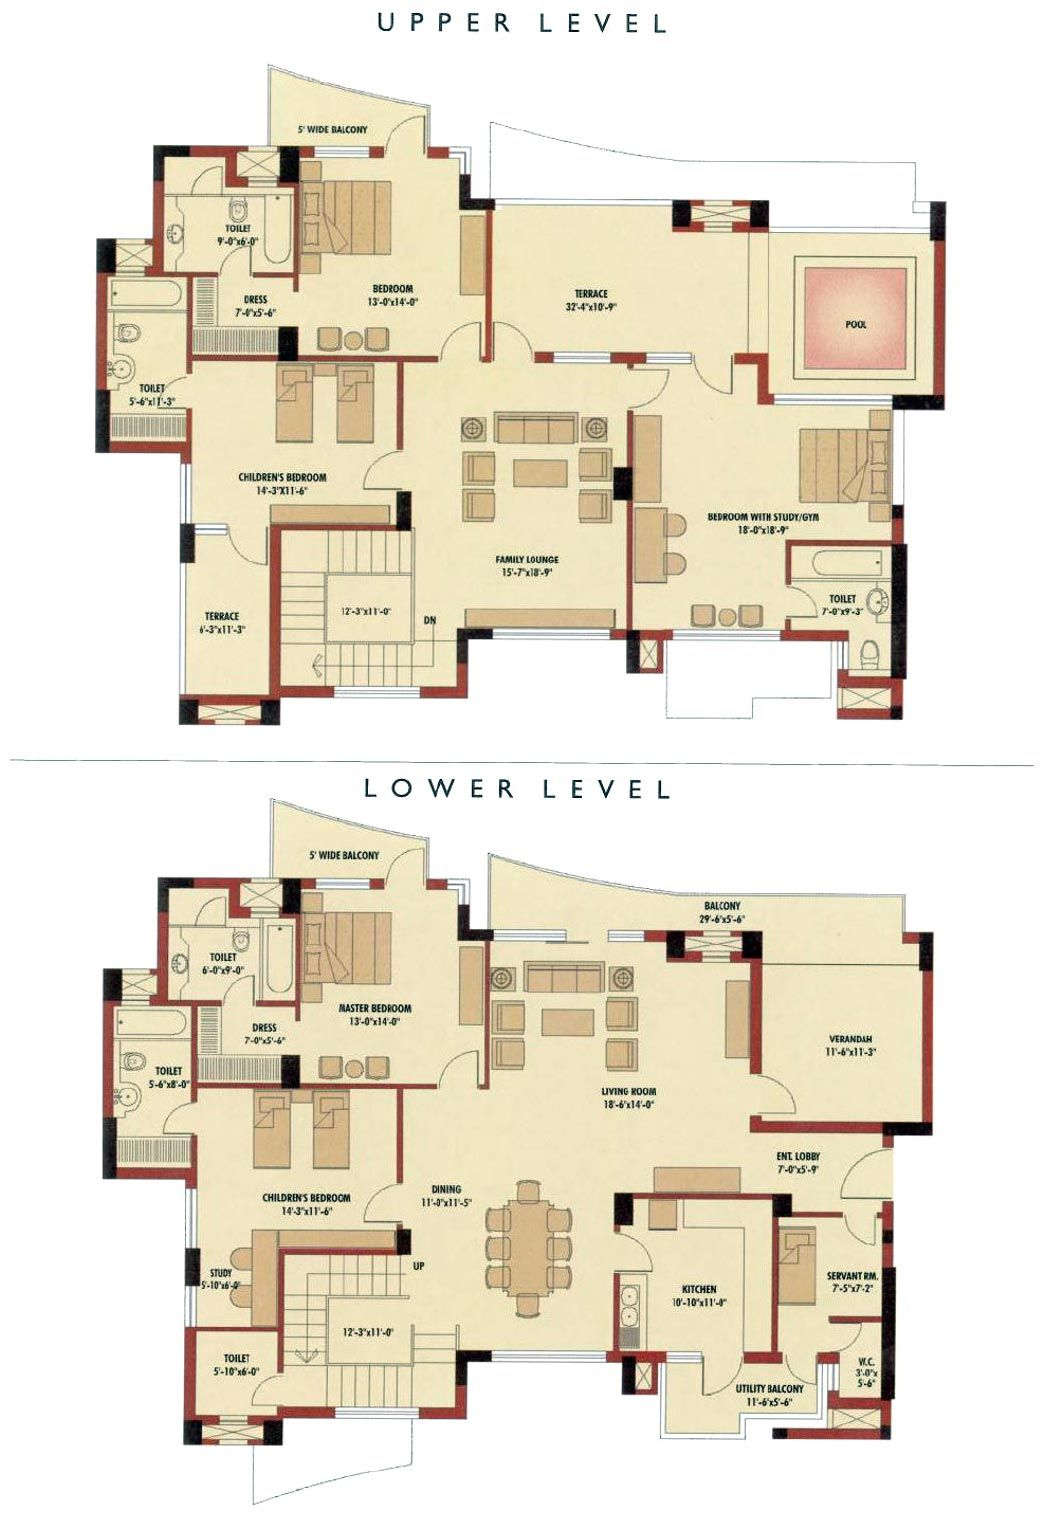 4 bedroom floor plans for duplexes vision board for Luxury duplex house plans